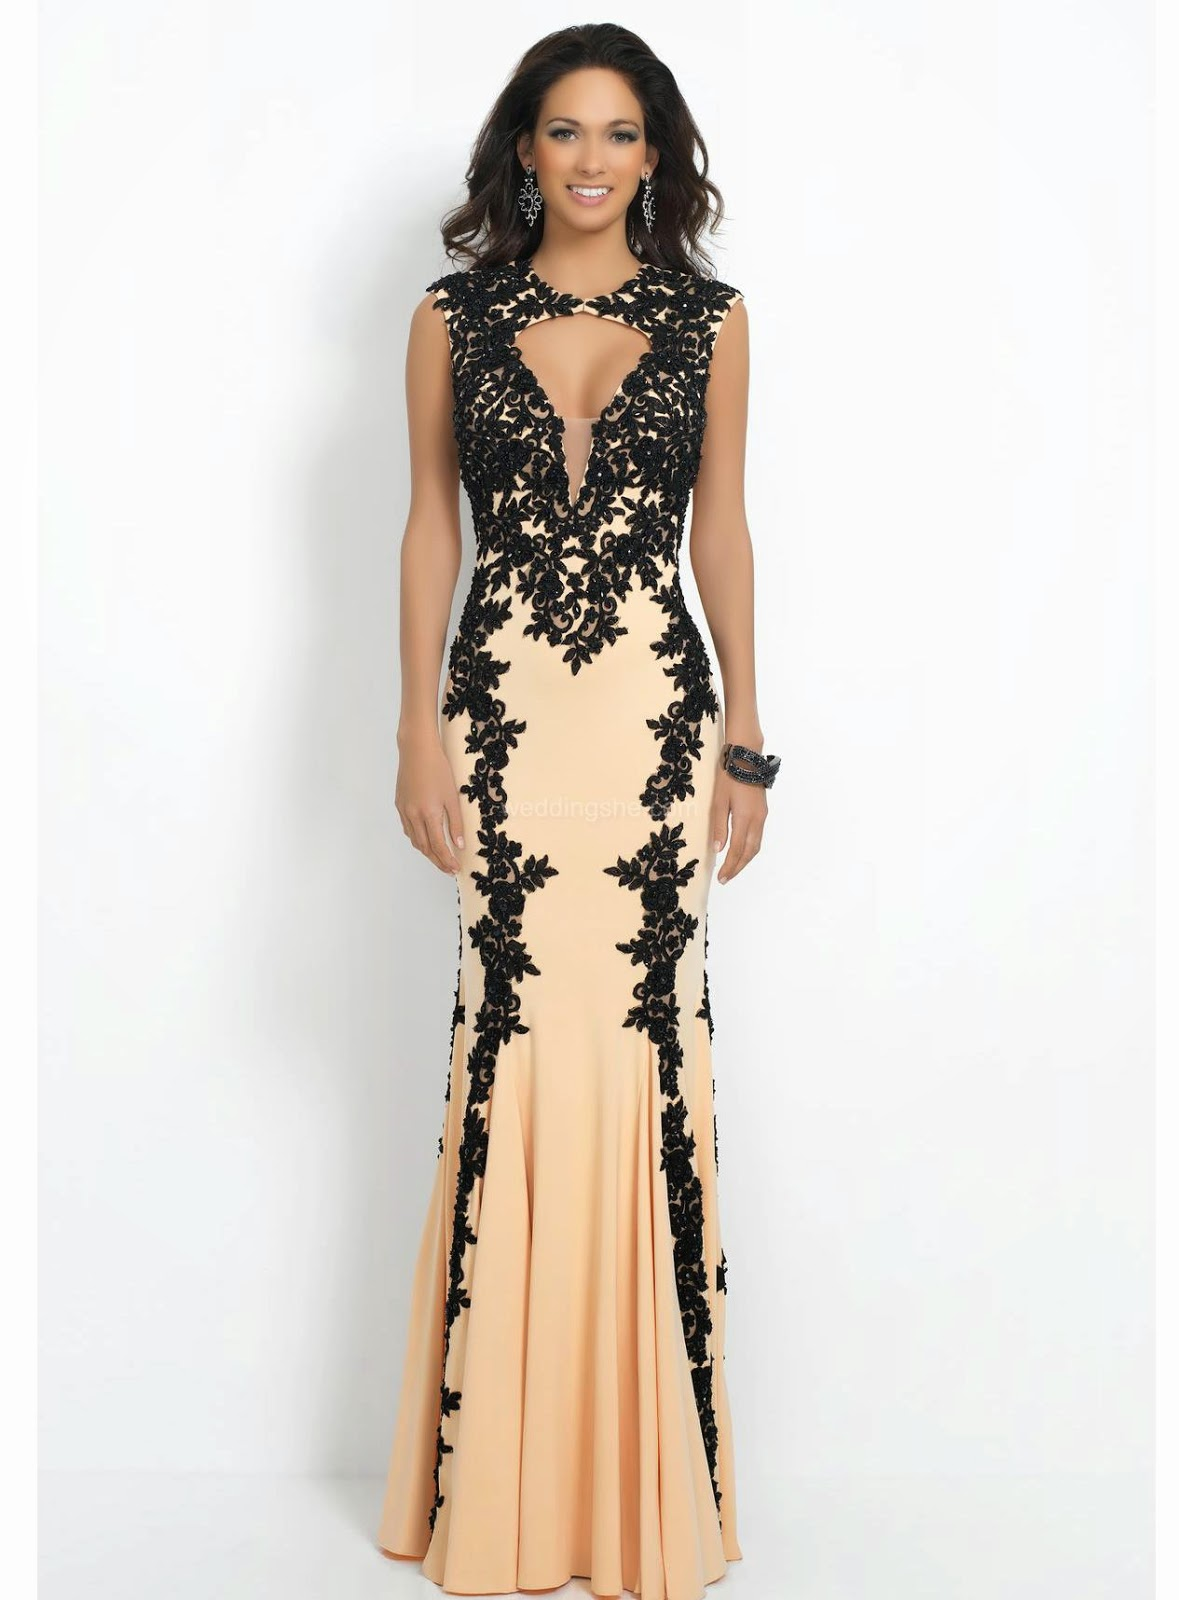 Rock chick evening dresses